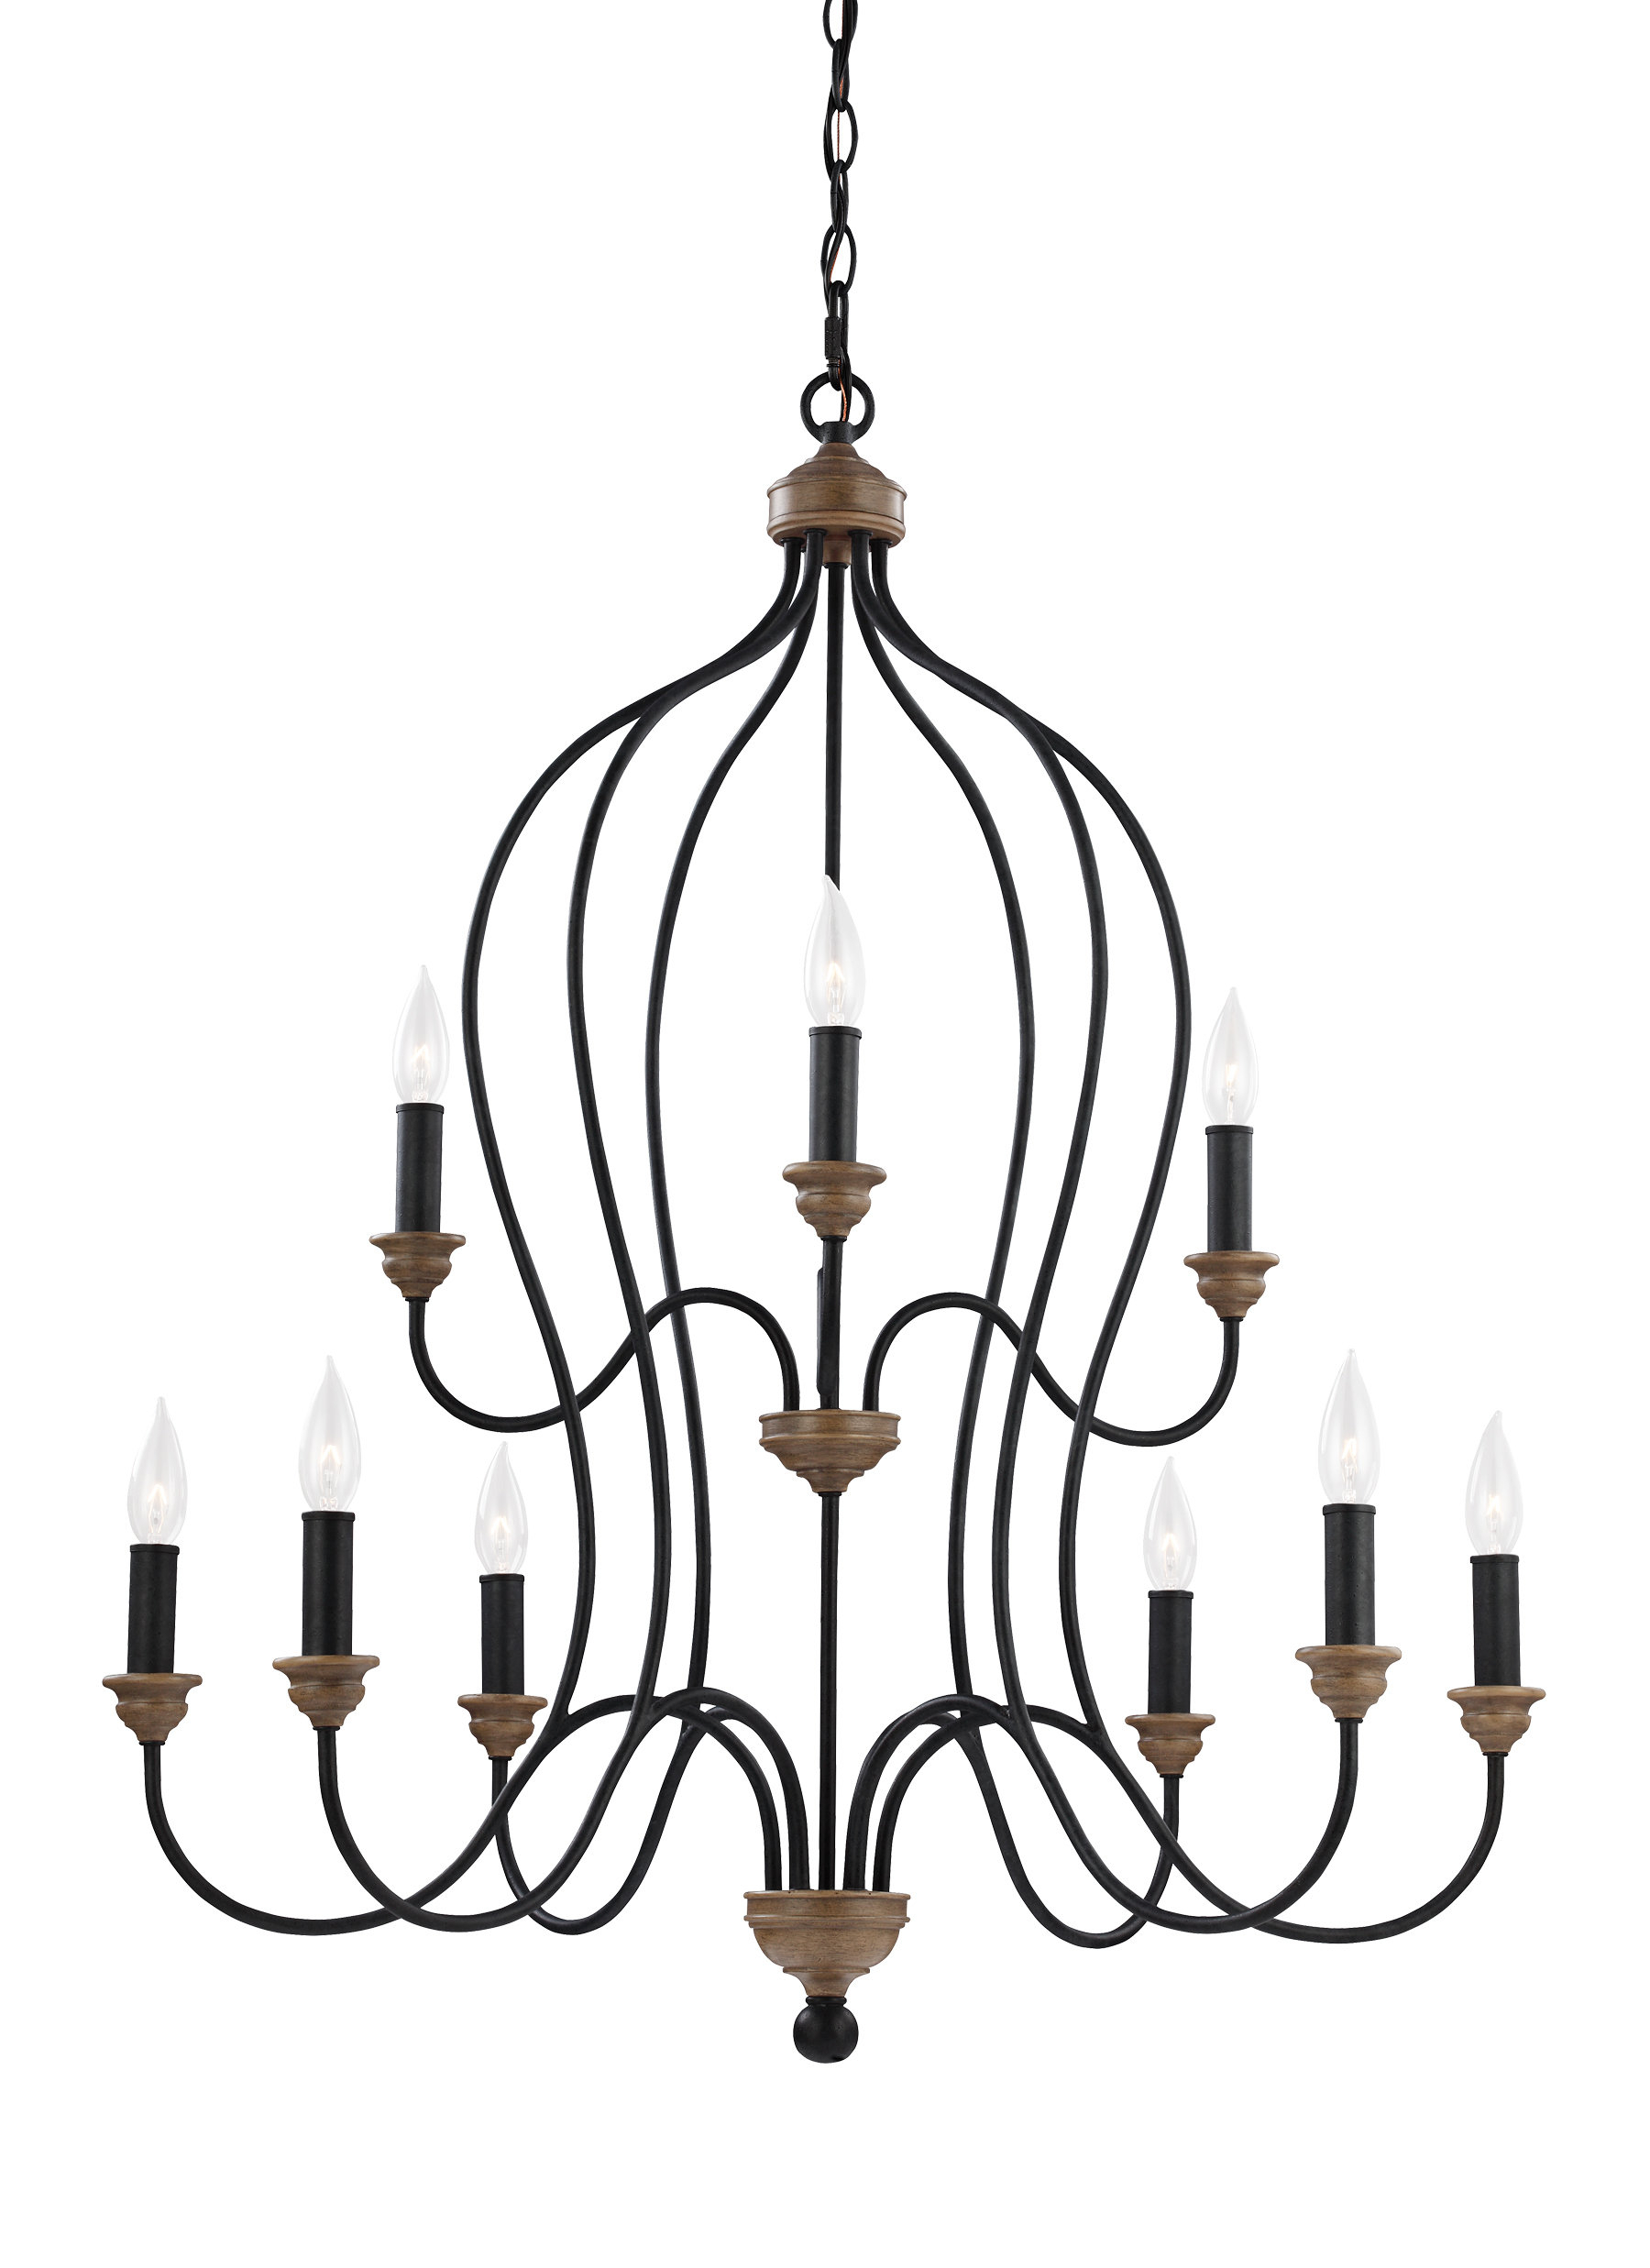 Sundberg 9 Light Candle Style Chandelier With Fashionable Gaines 9 Light Candle Style Chandeliers (Gallery 5 of 20)